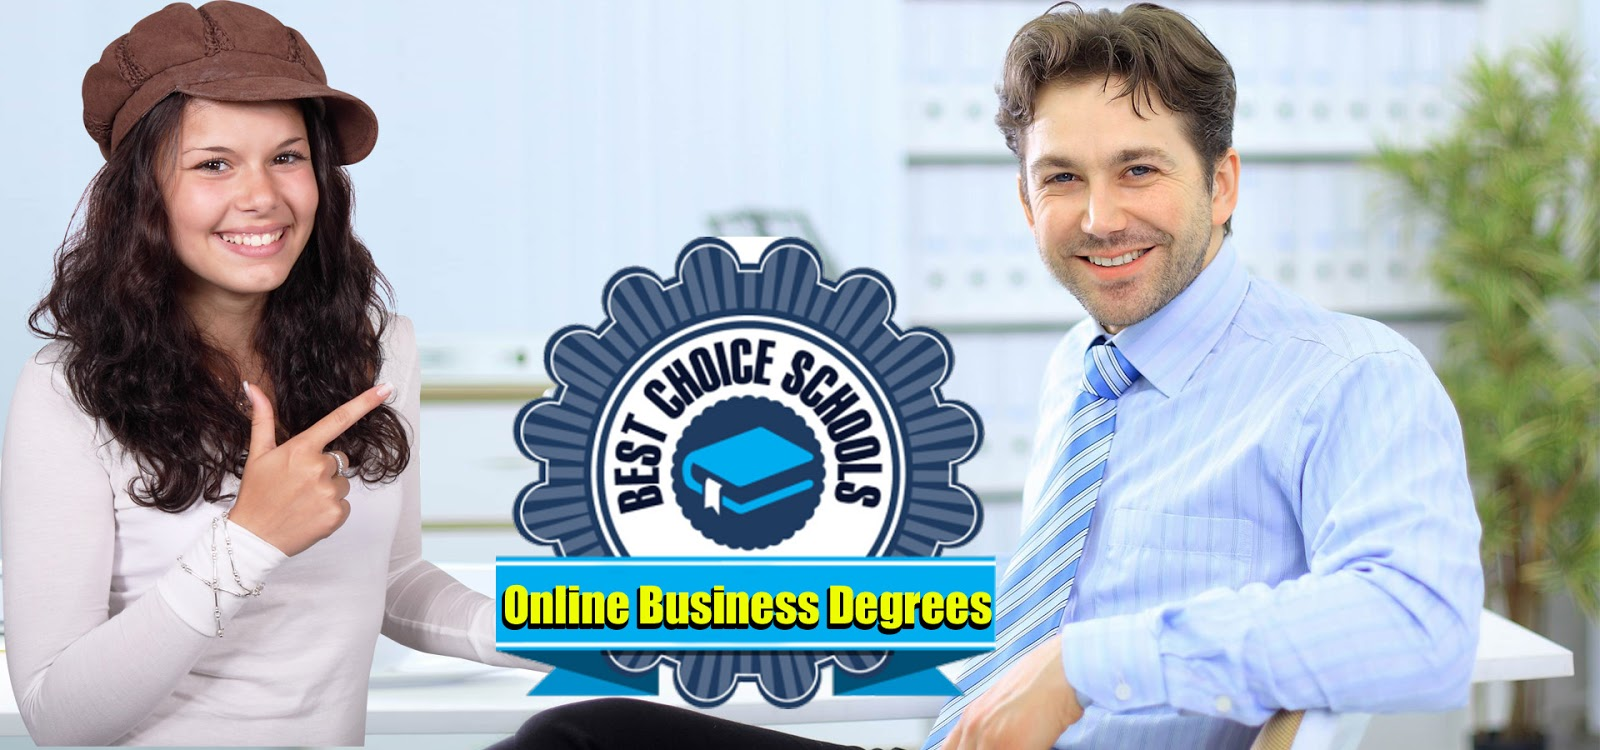 Online Business Degrees